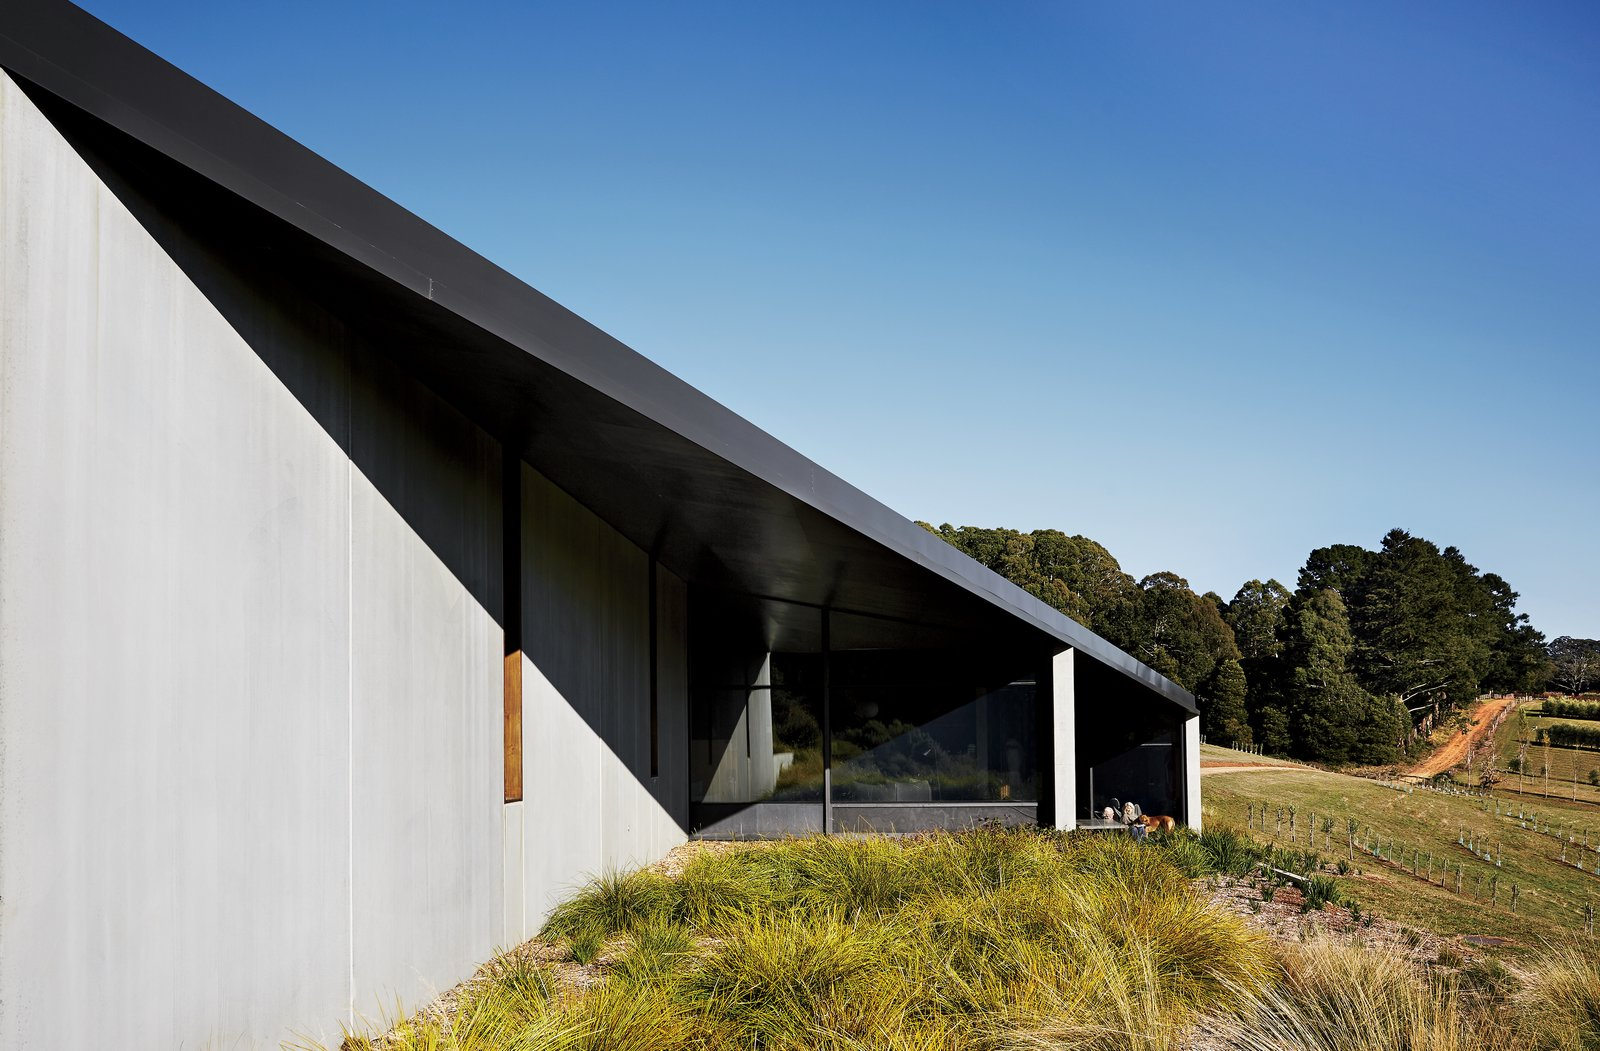 Embedded in the rugged southern Australian landscape, the House at Hanging Rock comprises three volumes connected by a sweeping rhomboid roof. The Colorbond steel overhang is in a dark-gray shade called Monument.